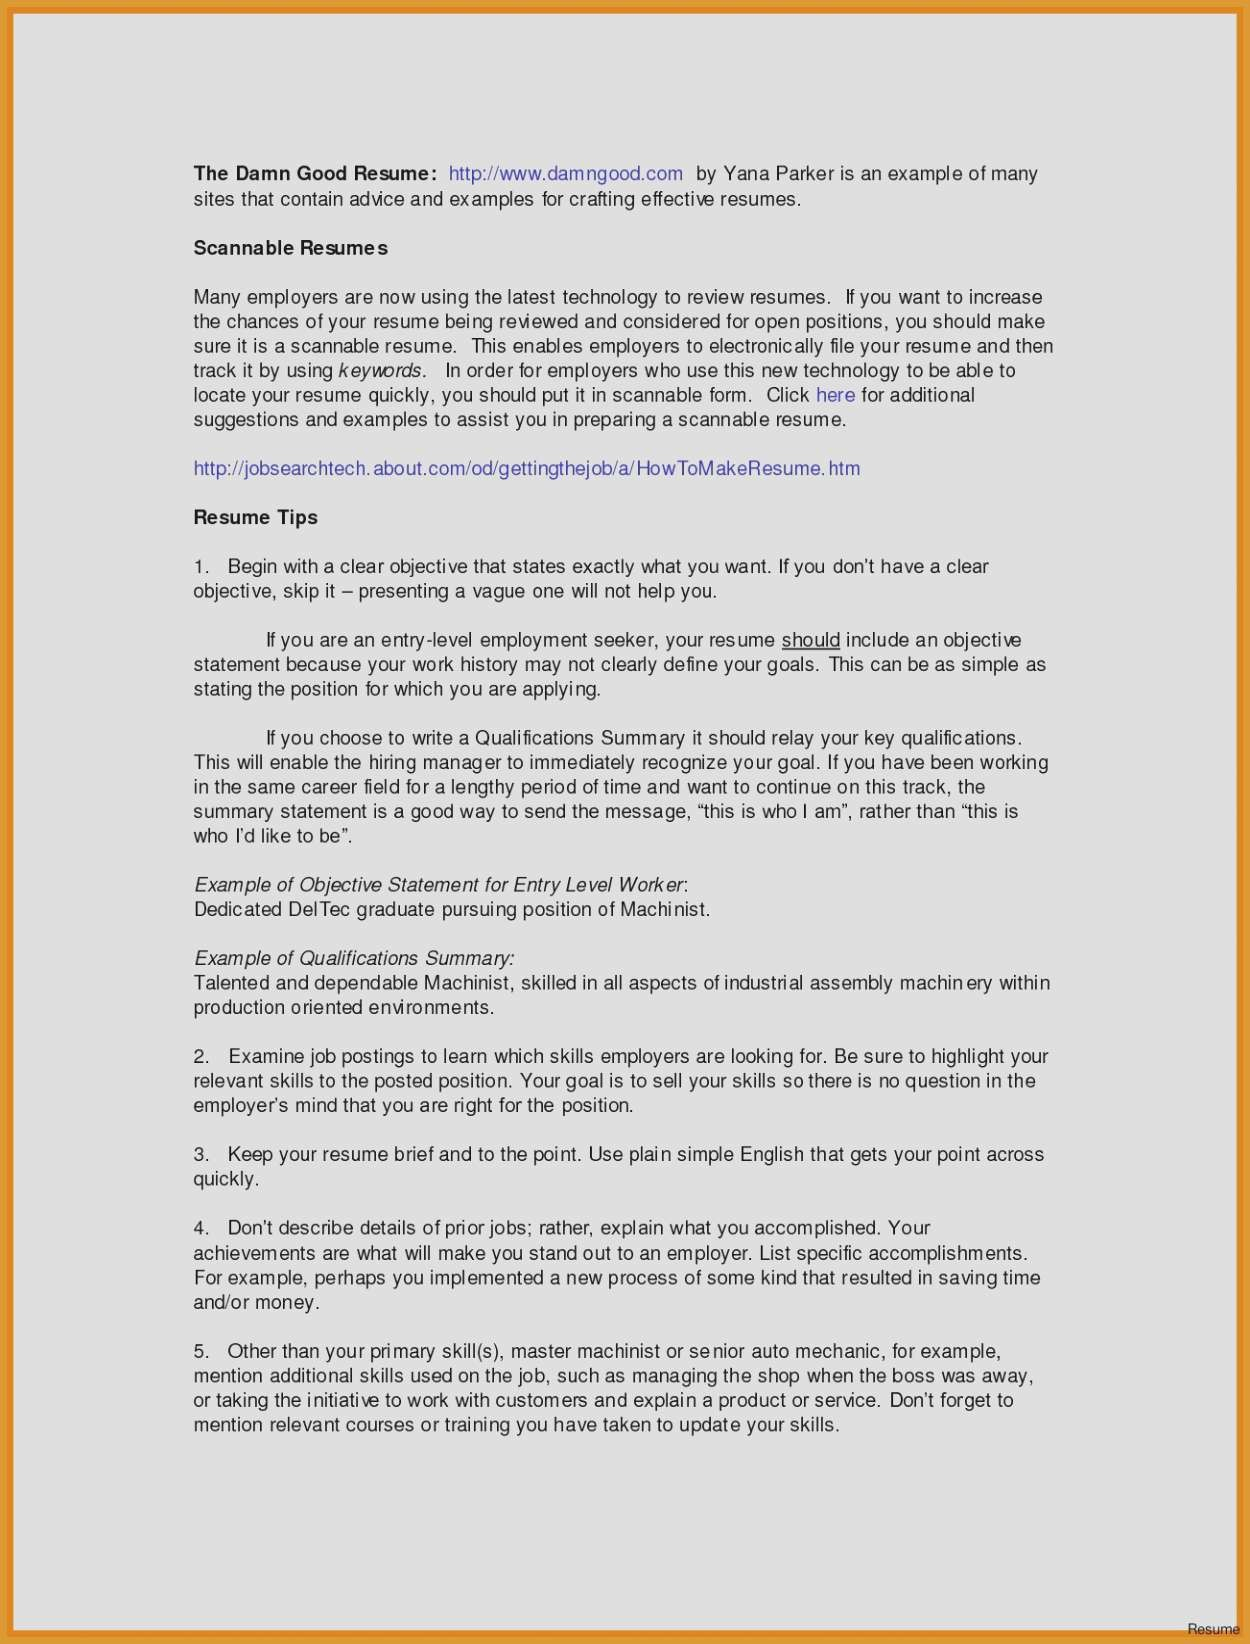 Executive assistant Resume Bullet Points - Executive assistant Job Description Resume Best Sample Resume for